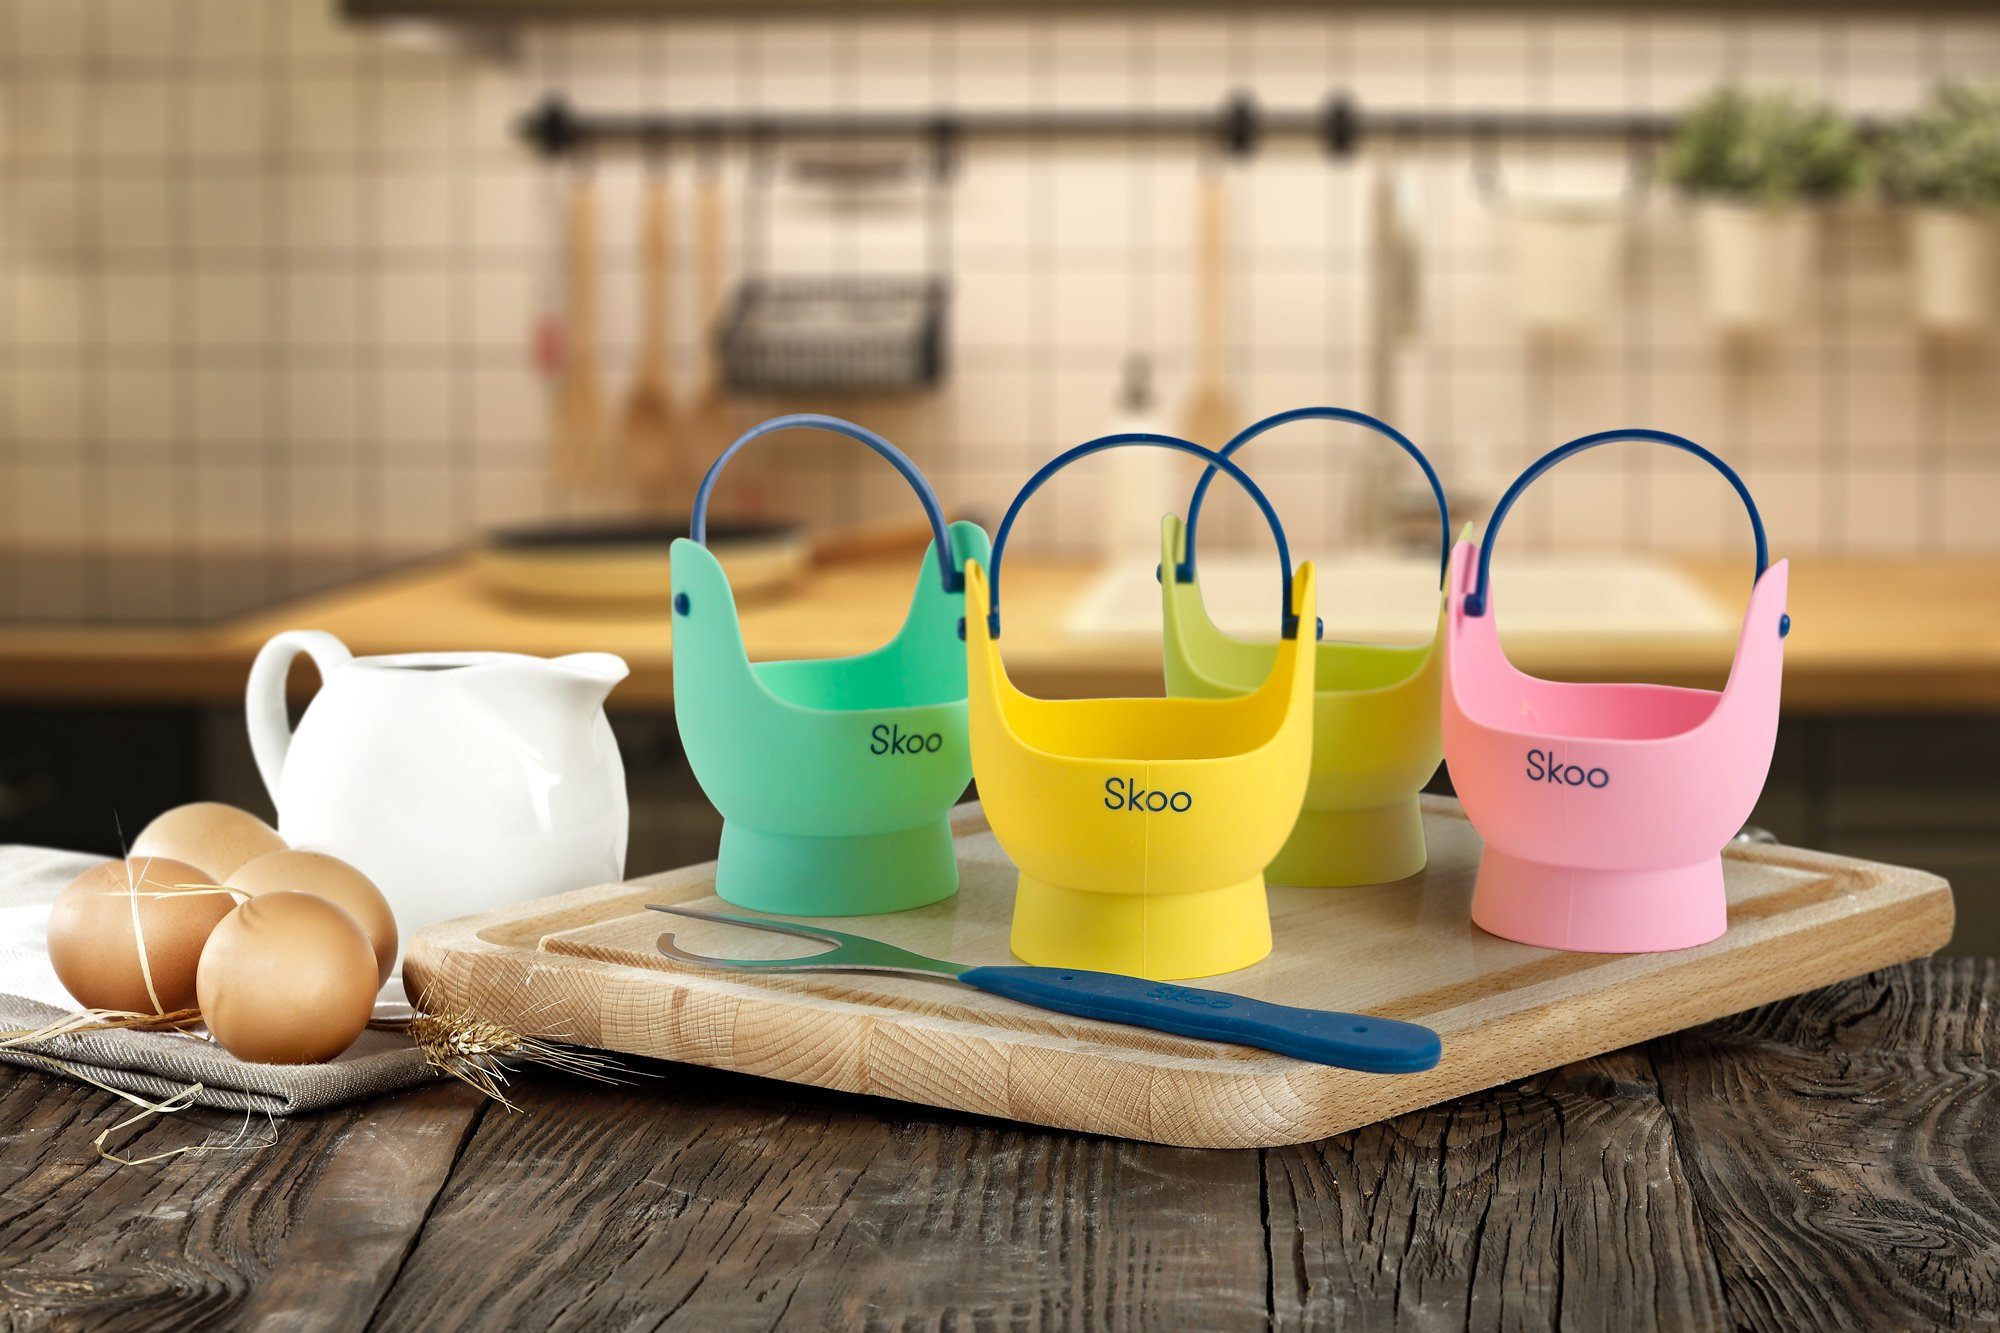 Silicone Egg Poacher Cups + Free Fork - Egg Cooker Set - Perfect Poached Egg Maker - For Stove Top, Microwave and Instant Pot by Skoo (Image #3)